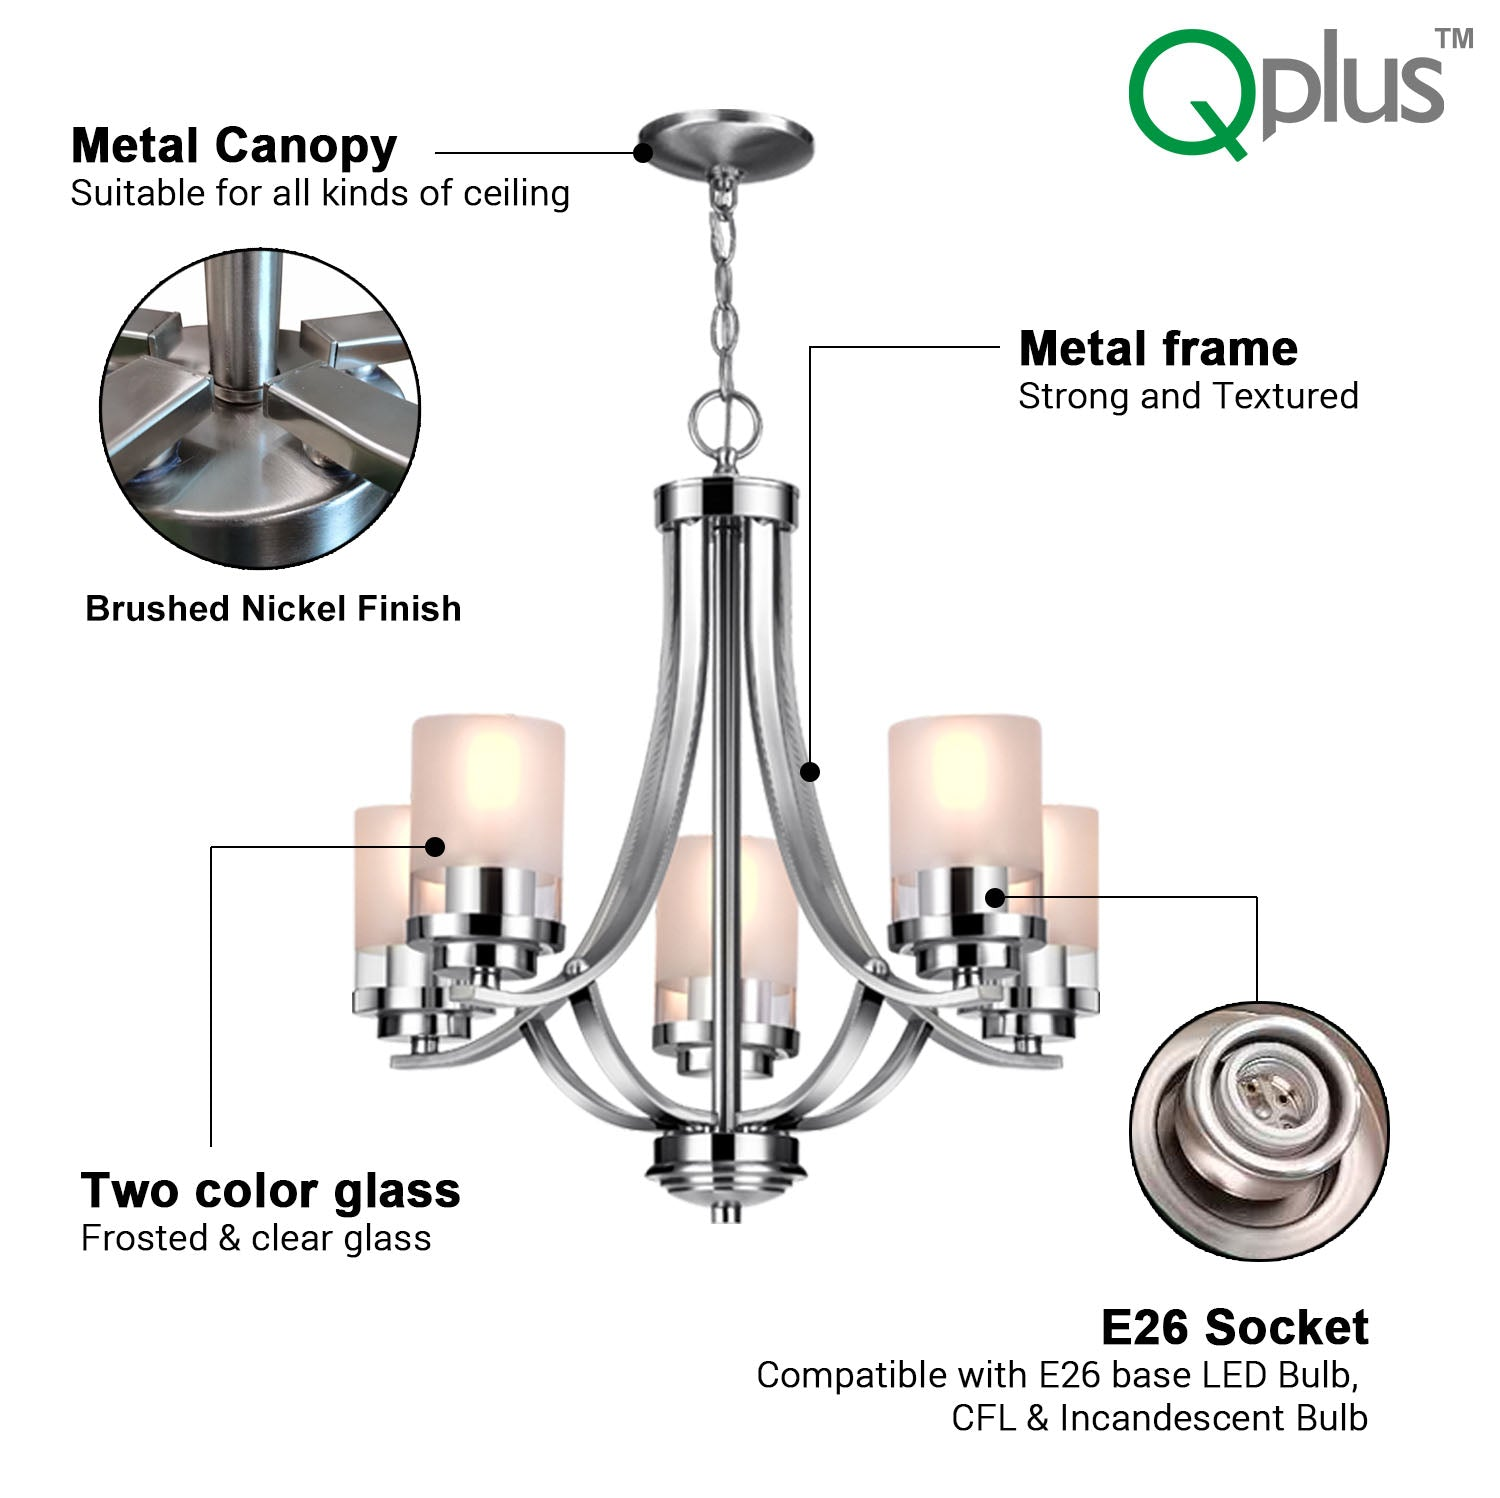 QPlus 5 Light Tulip Chandelier Pendant Lamp with E26 Bulb base & Clear/Frosted Glass Shades - Brushed Nickel / Bronze + 5 A21 LED Bulbs Free